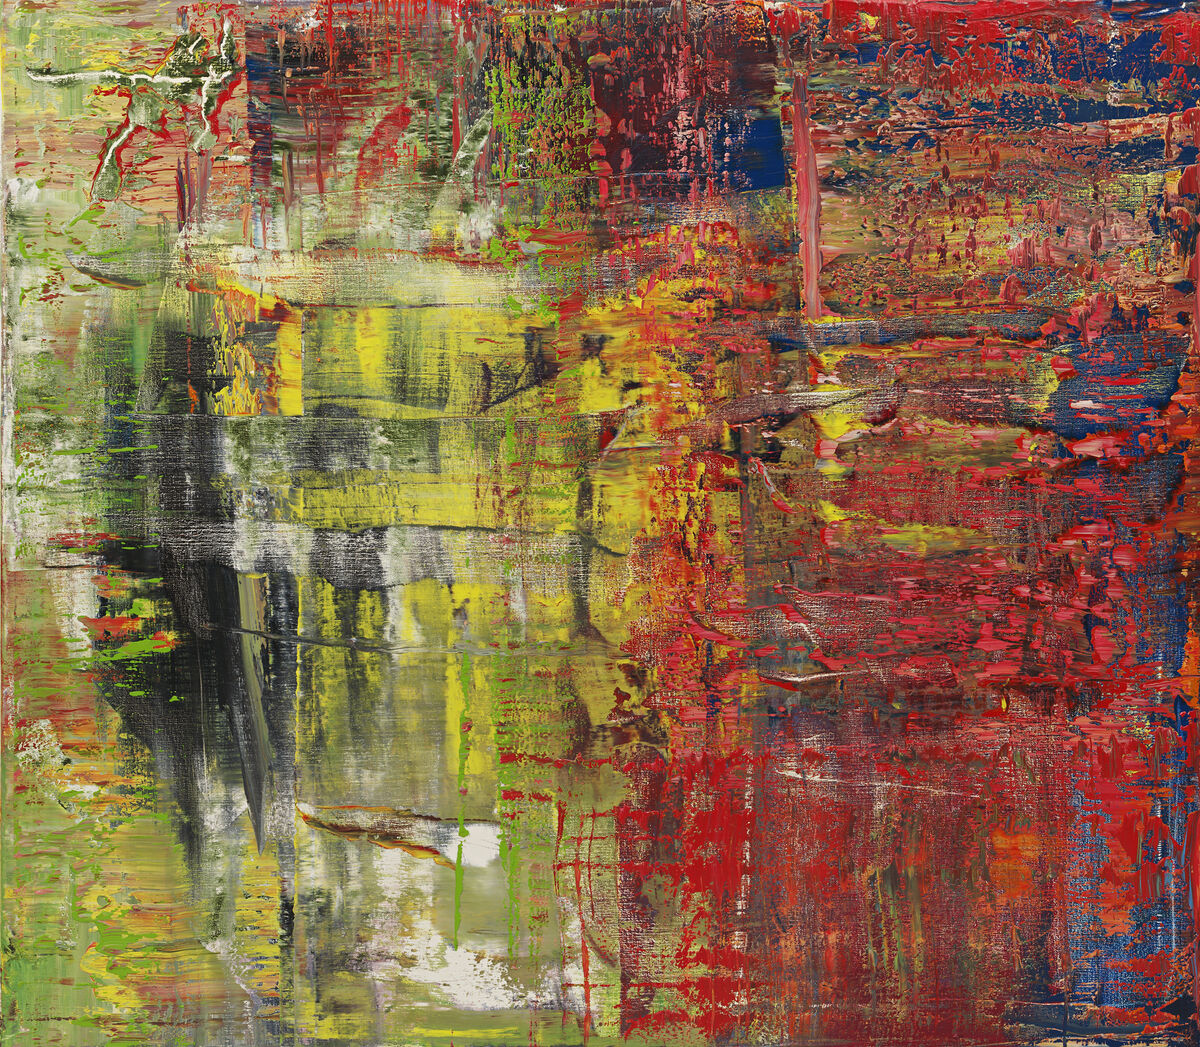 Gerhard Richter, 940-8 Abstraktes Bild, 2015. Image courtesy of the artist and Marian Goodman Gallery.